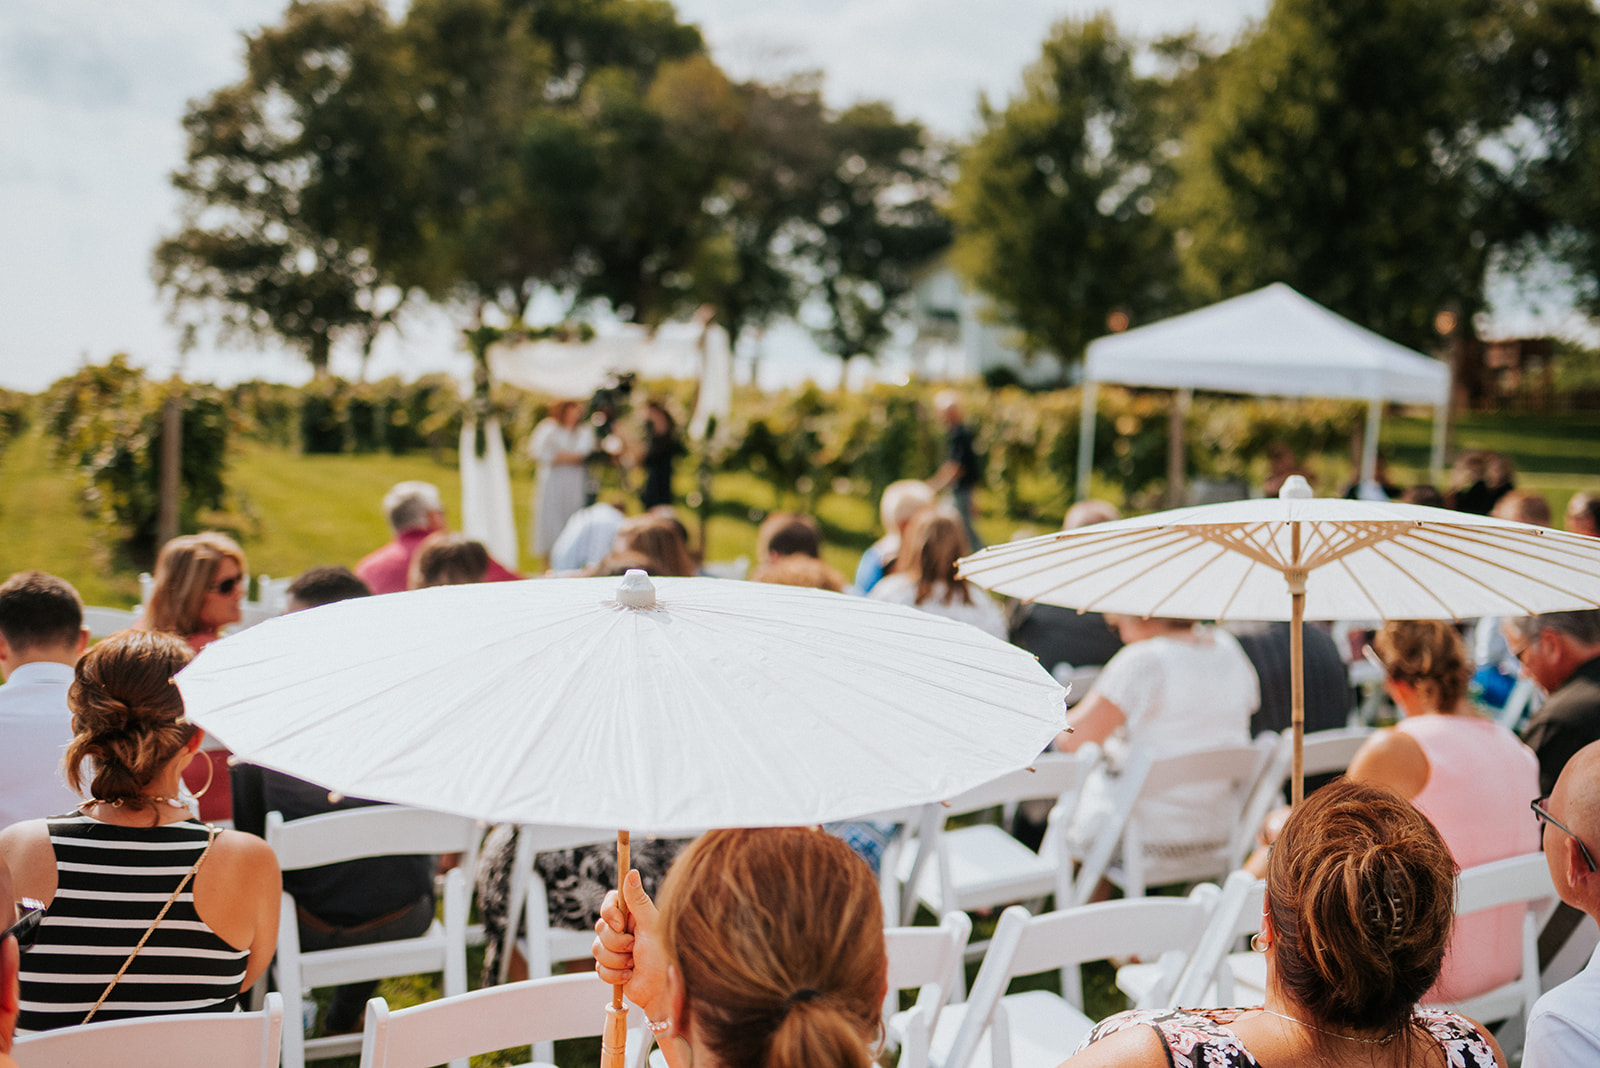 overthevineswisconsinwedding_0540.jpg